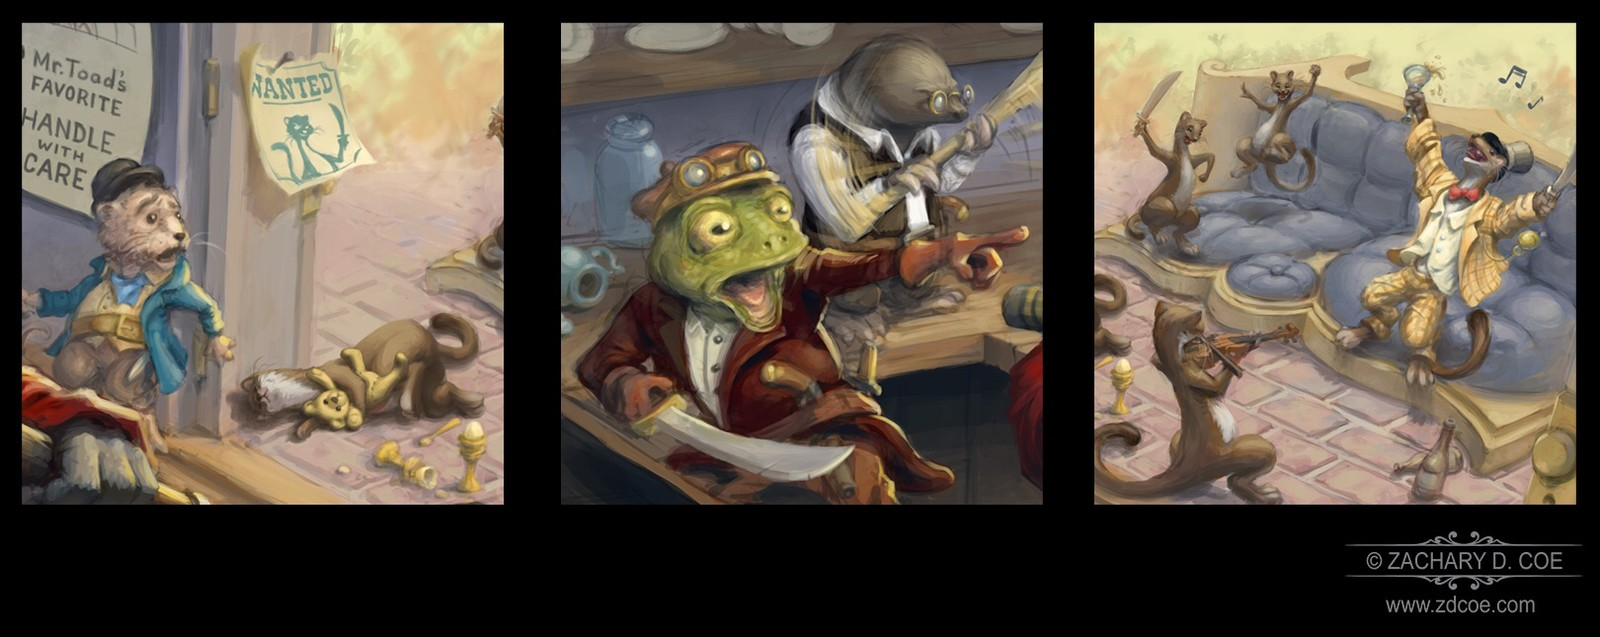 TAKING BACK TOAD HALL! Bookmark Art Close Ups by Zachary D. Coe